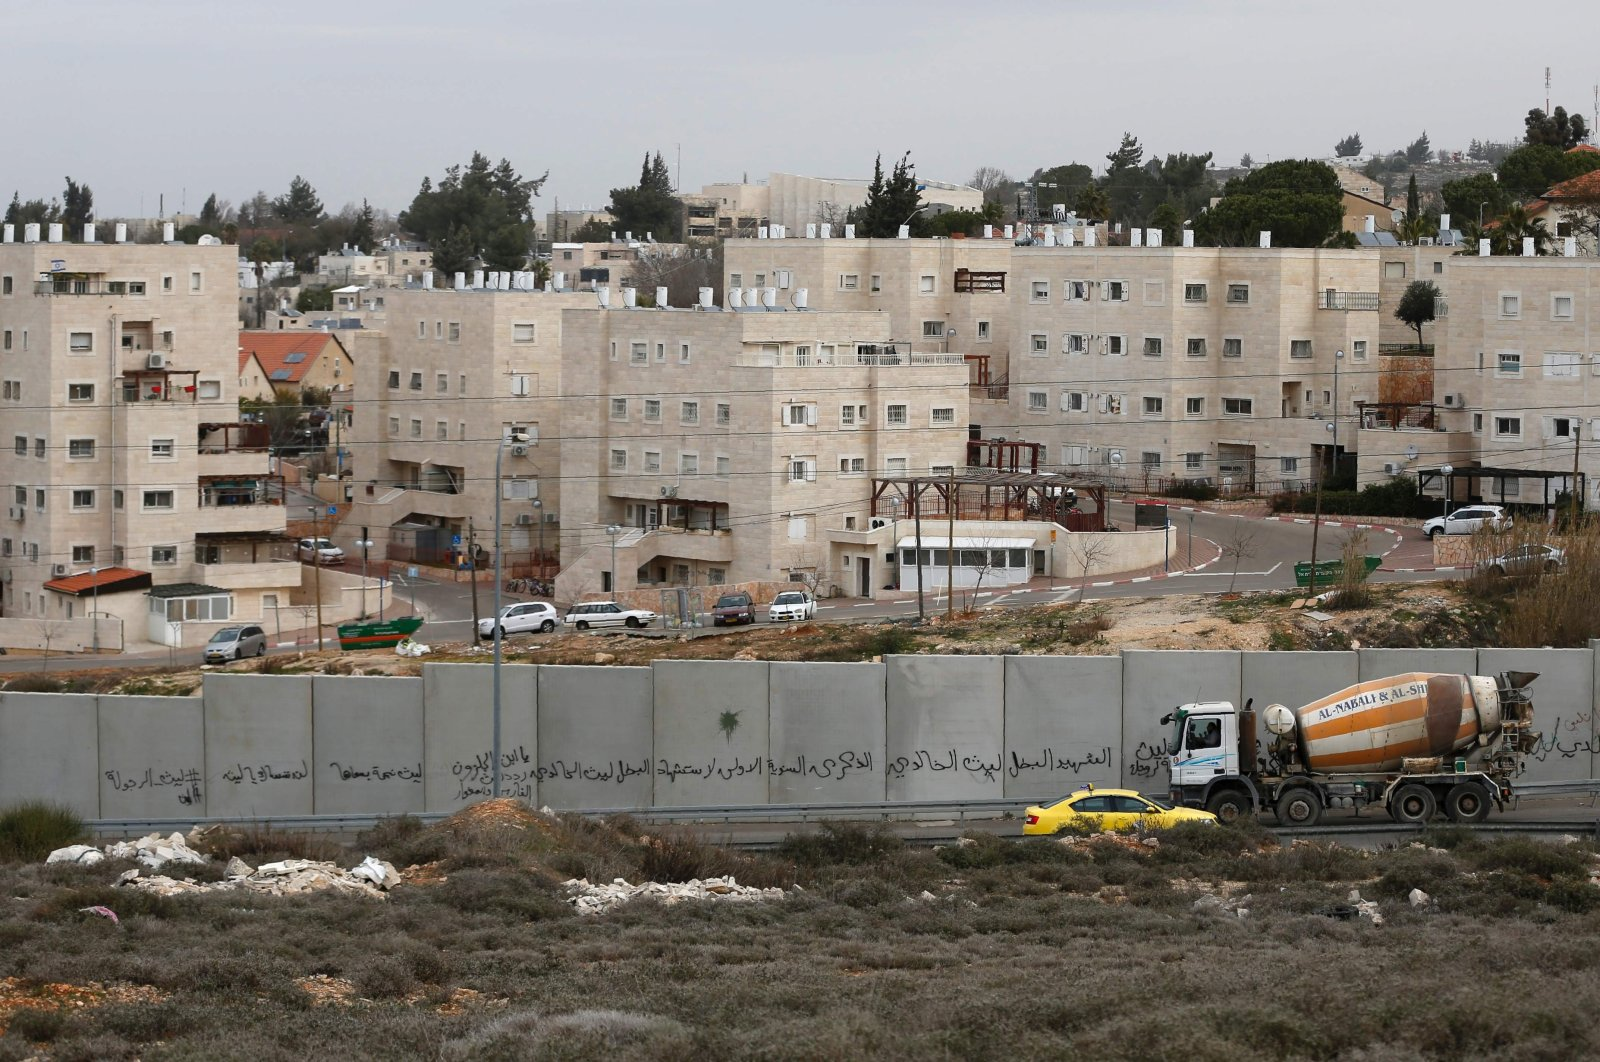 A photograph of Israel's controversial separation barrier and the settlement of Beit El behind it, taken from the city of Ramallah, West Bank, Palestine, Jan. 25, 2017. (AFP File Photo)